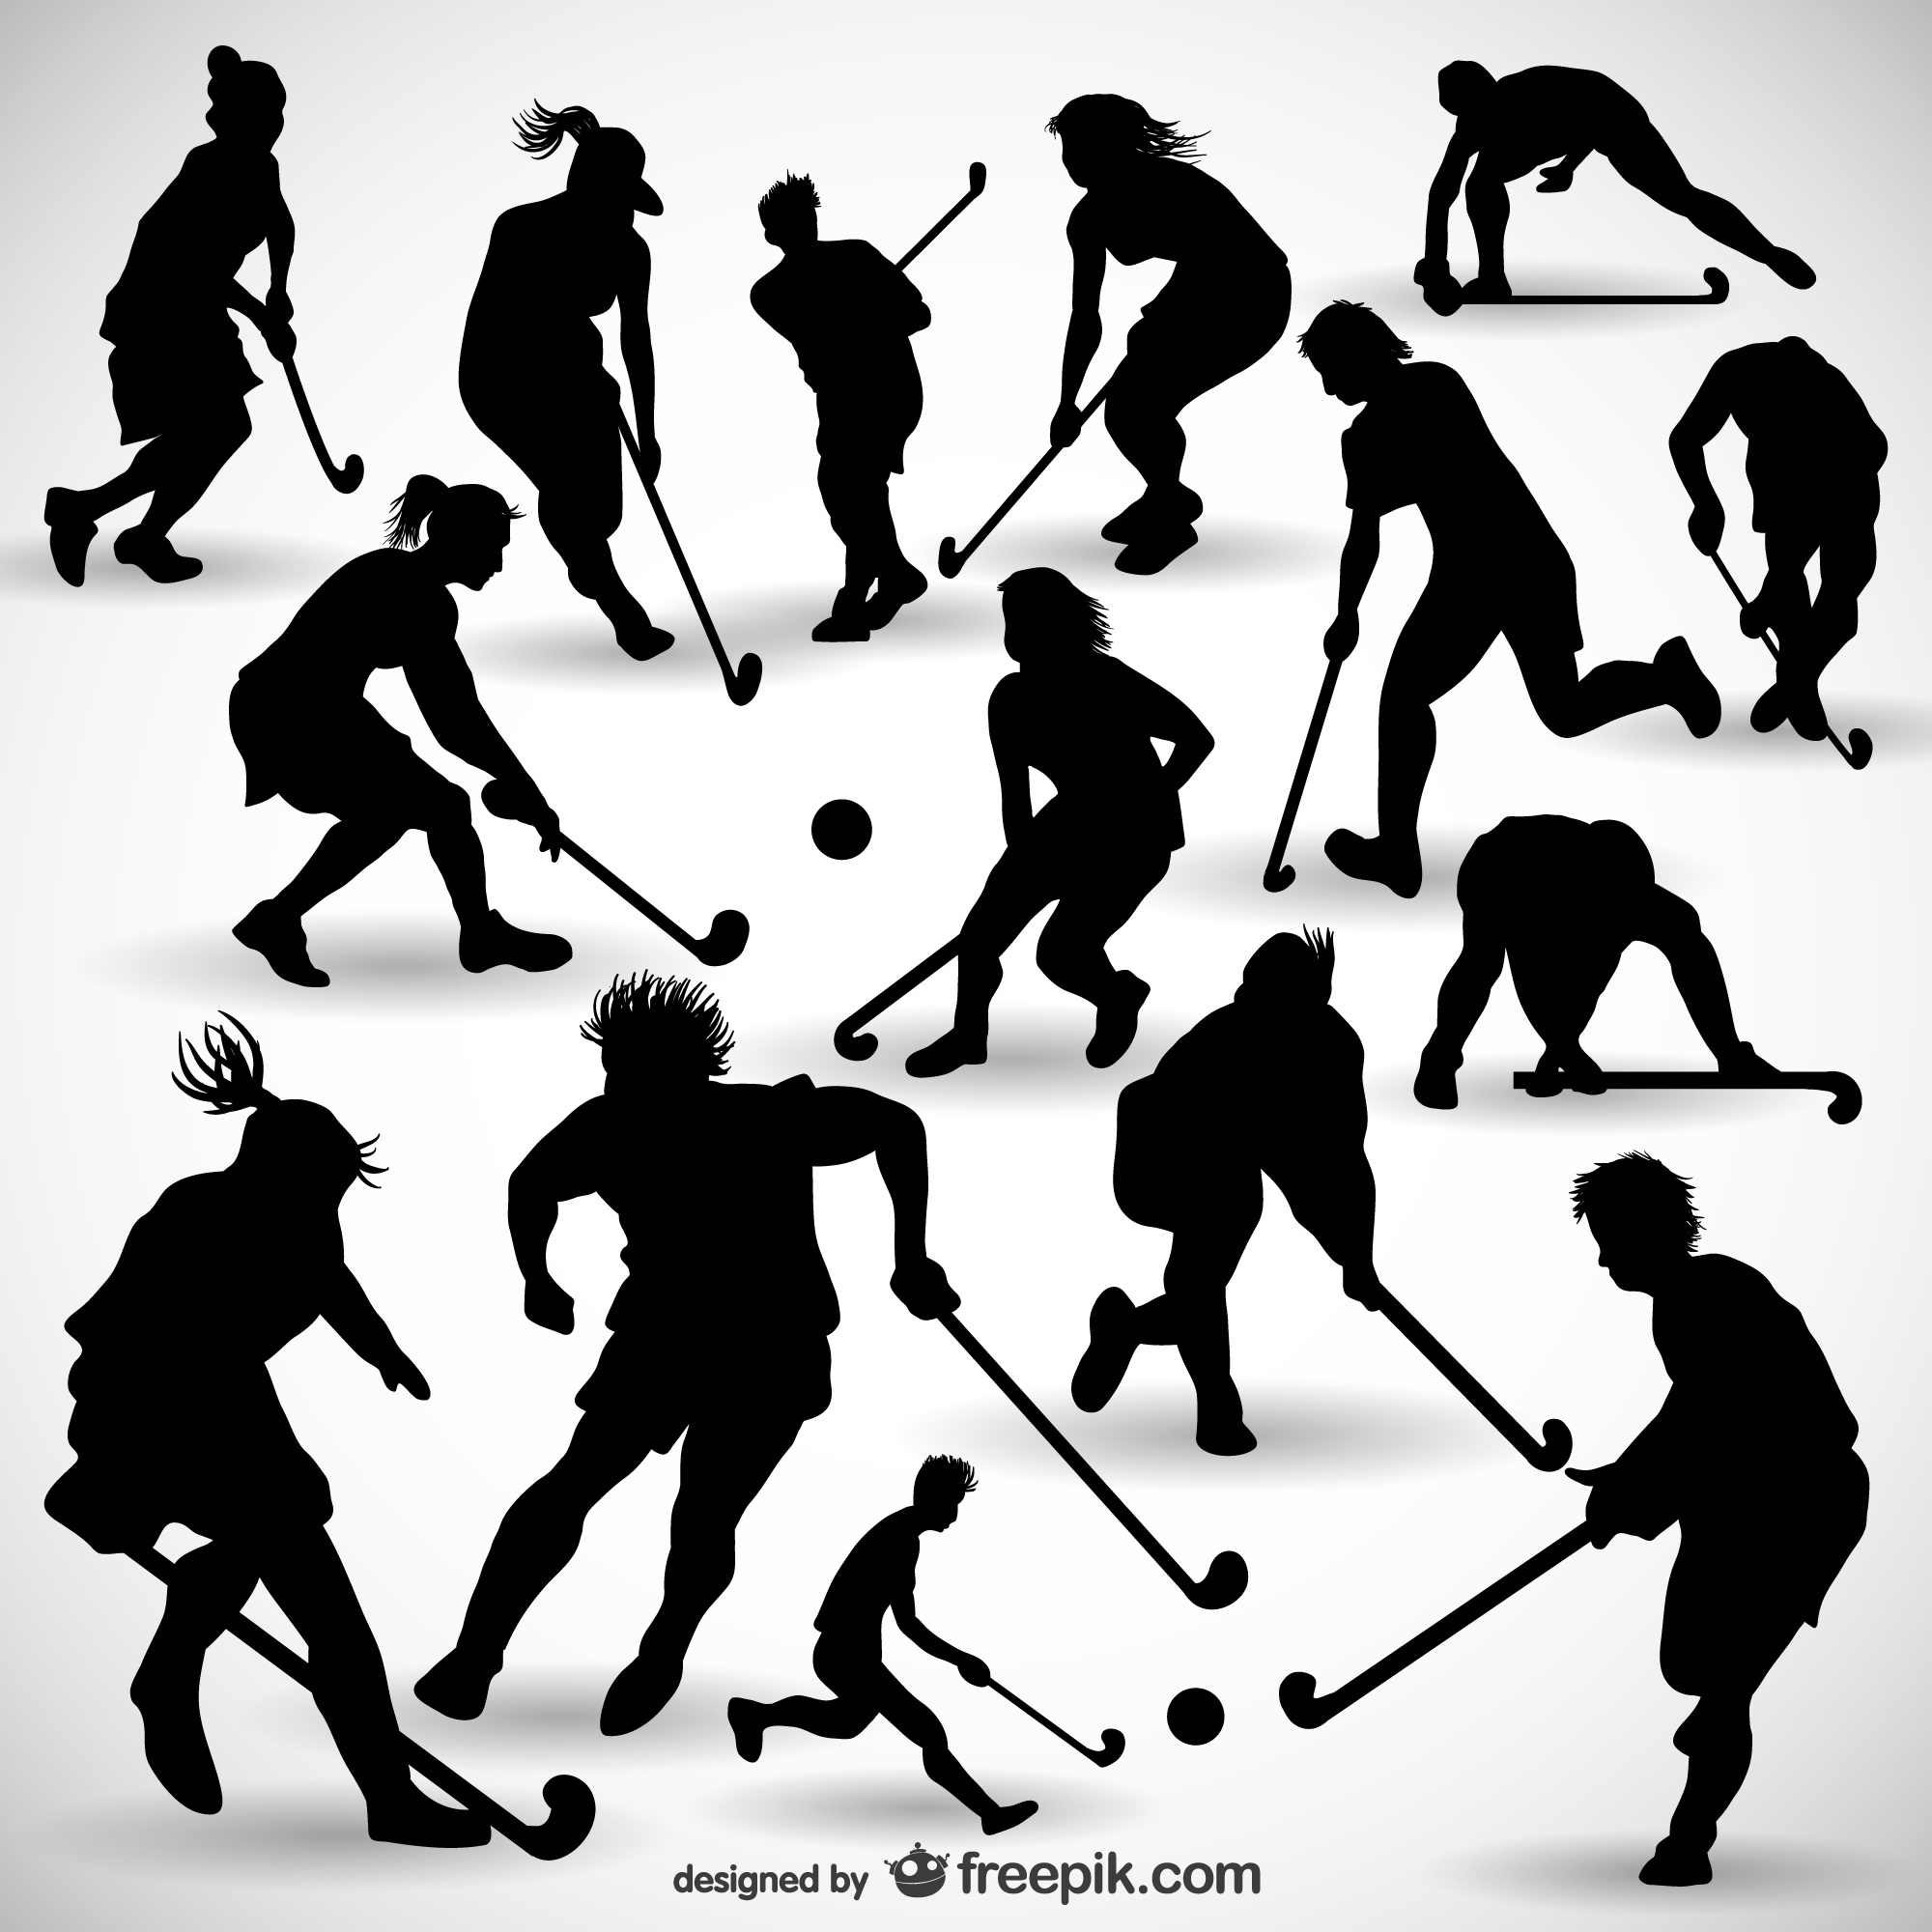 Hockey player silhouettes pack